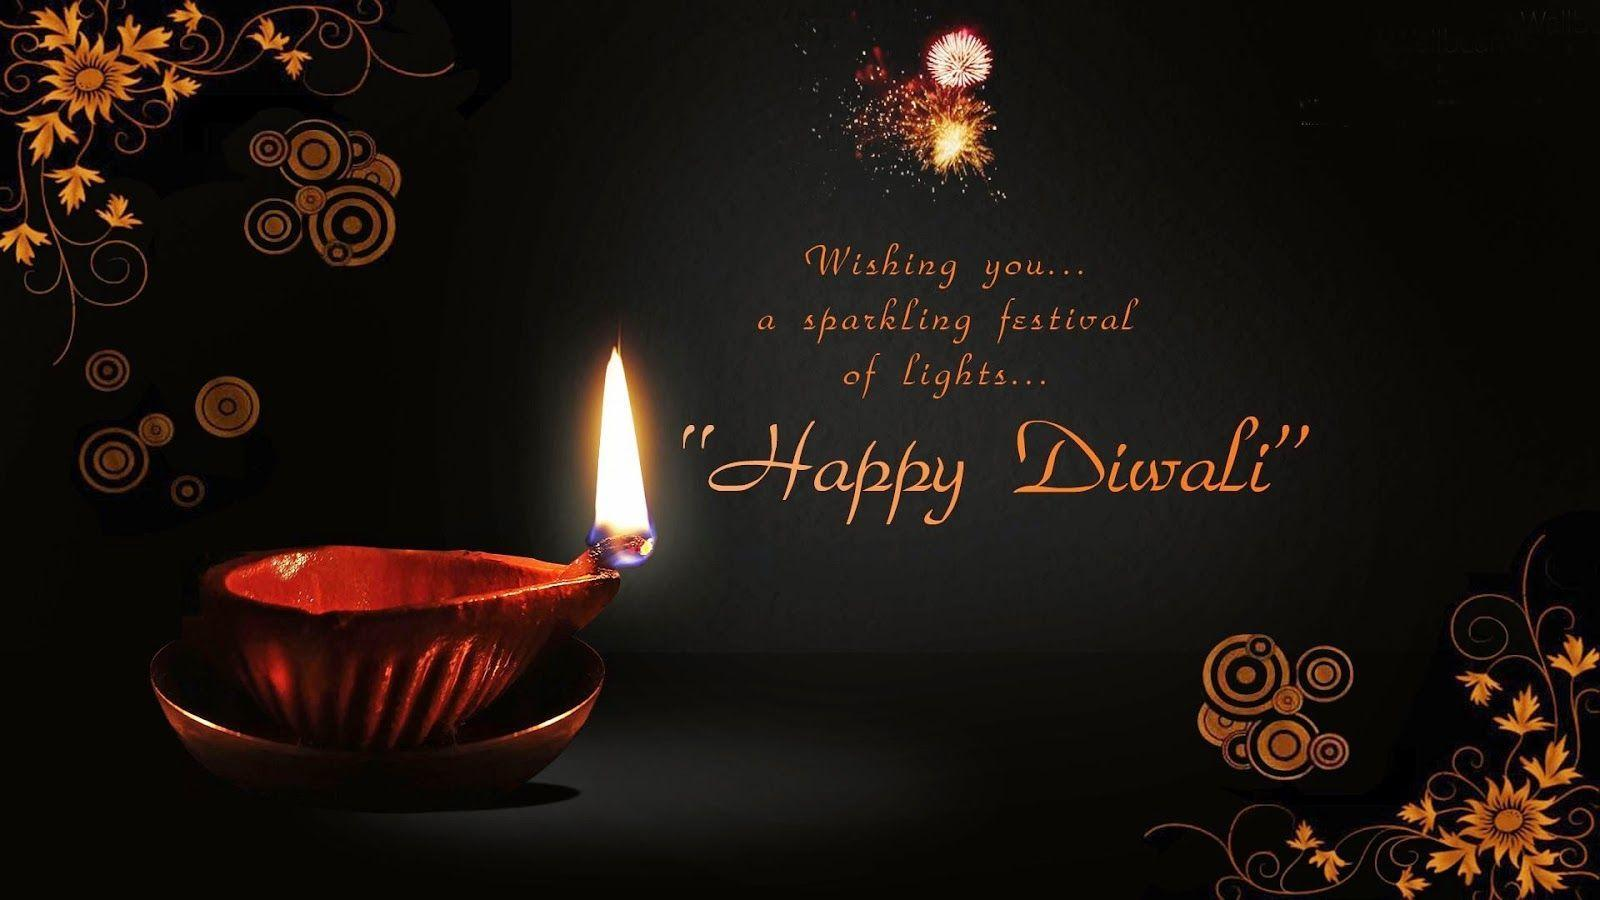 diwali wallpapers - wallpaper cave